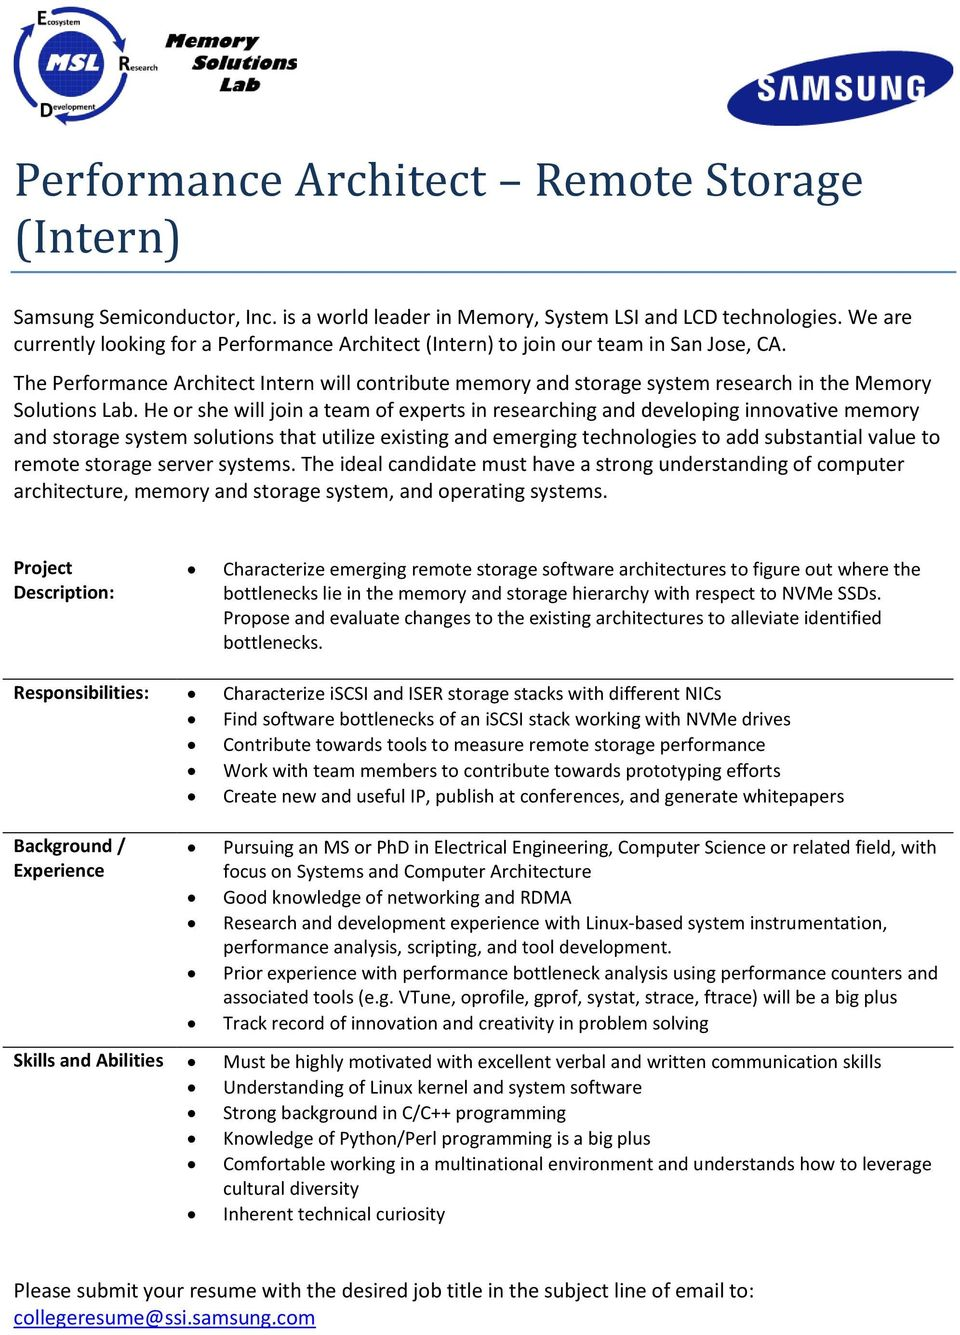 Performance Architect Remote Storage (Intern) - PDF